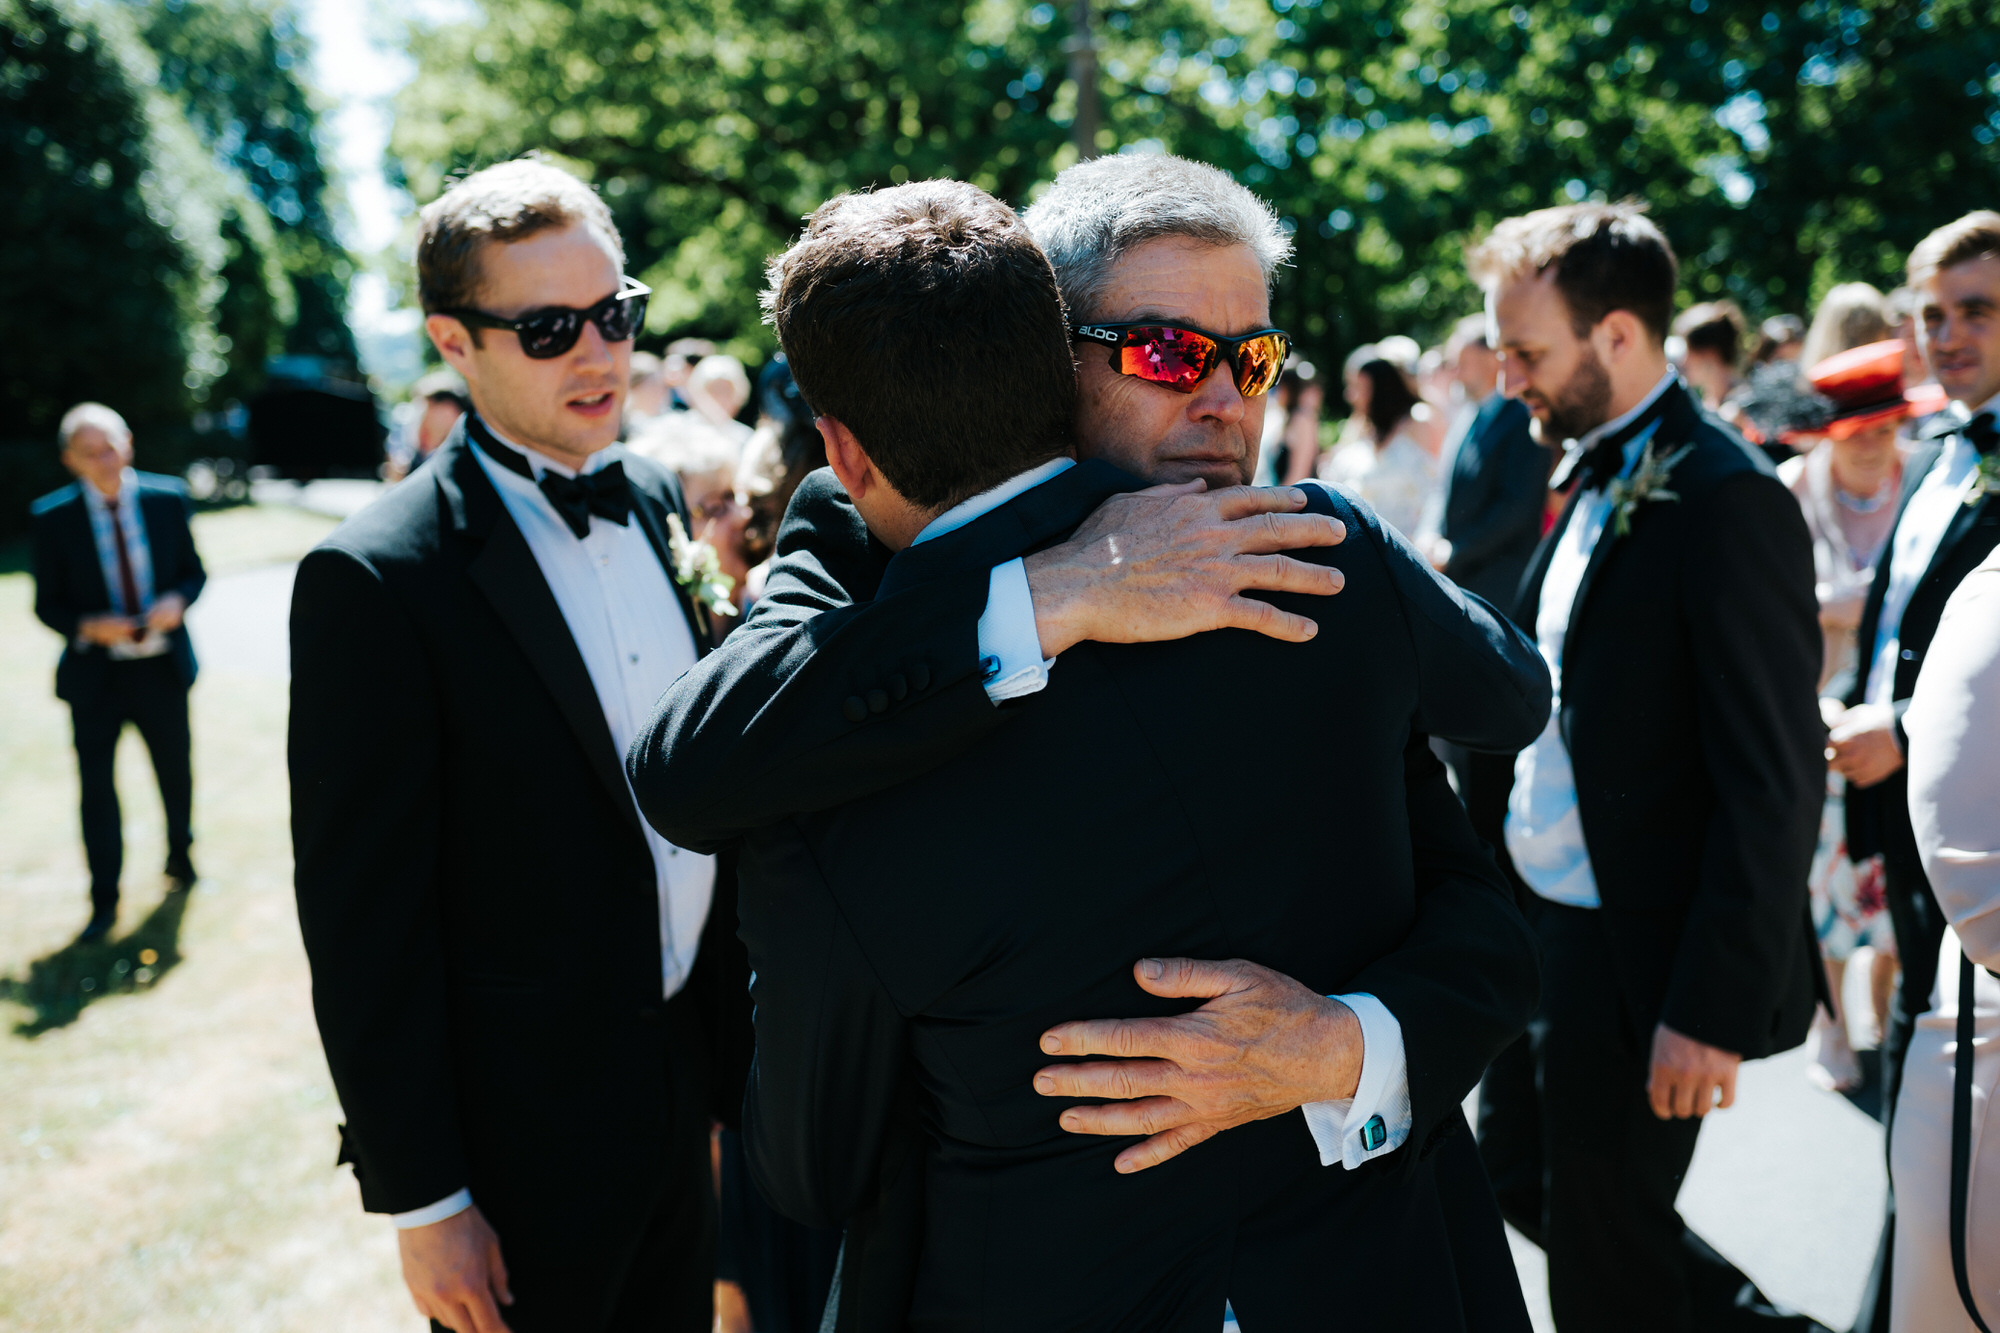 Celebration hugs after getting married